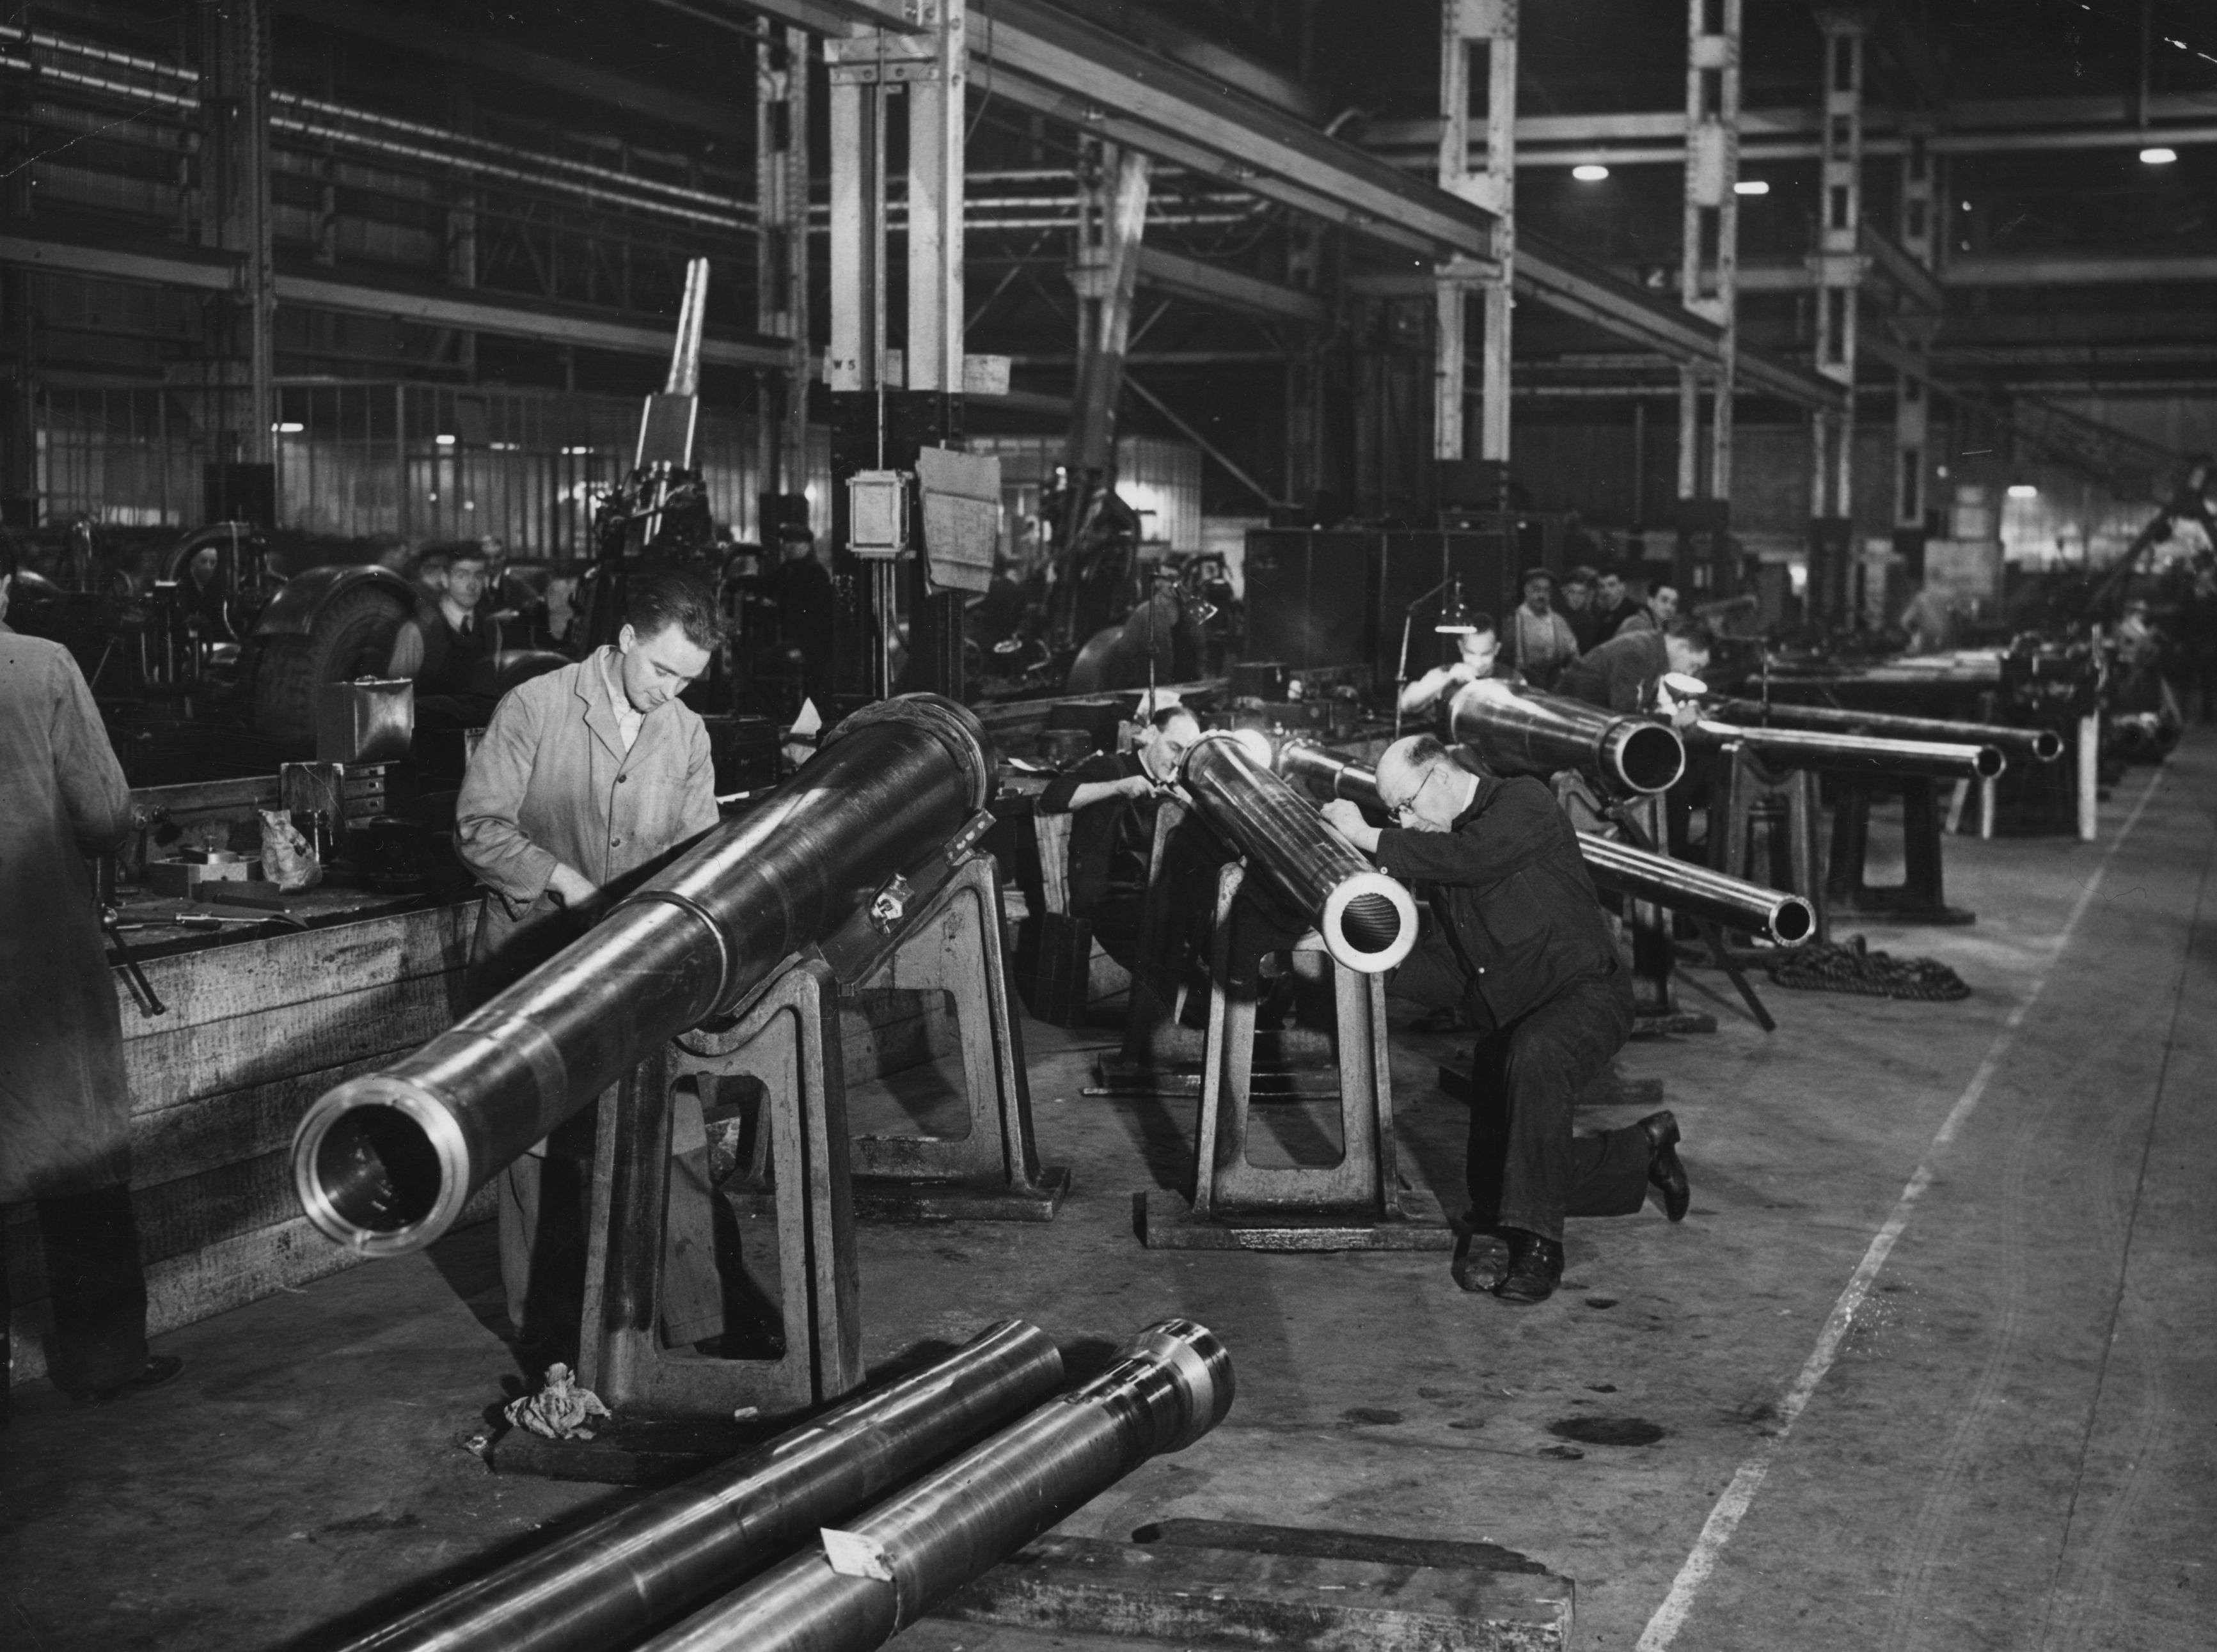 British ordinance workers put the final touches to anti-aircraft gun barrels, c1940.  (Photo by Hudson/Topical Press Agency/Getty Images)